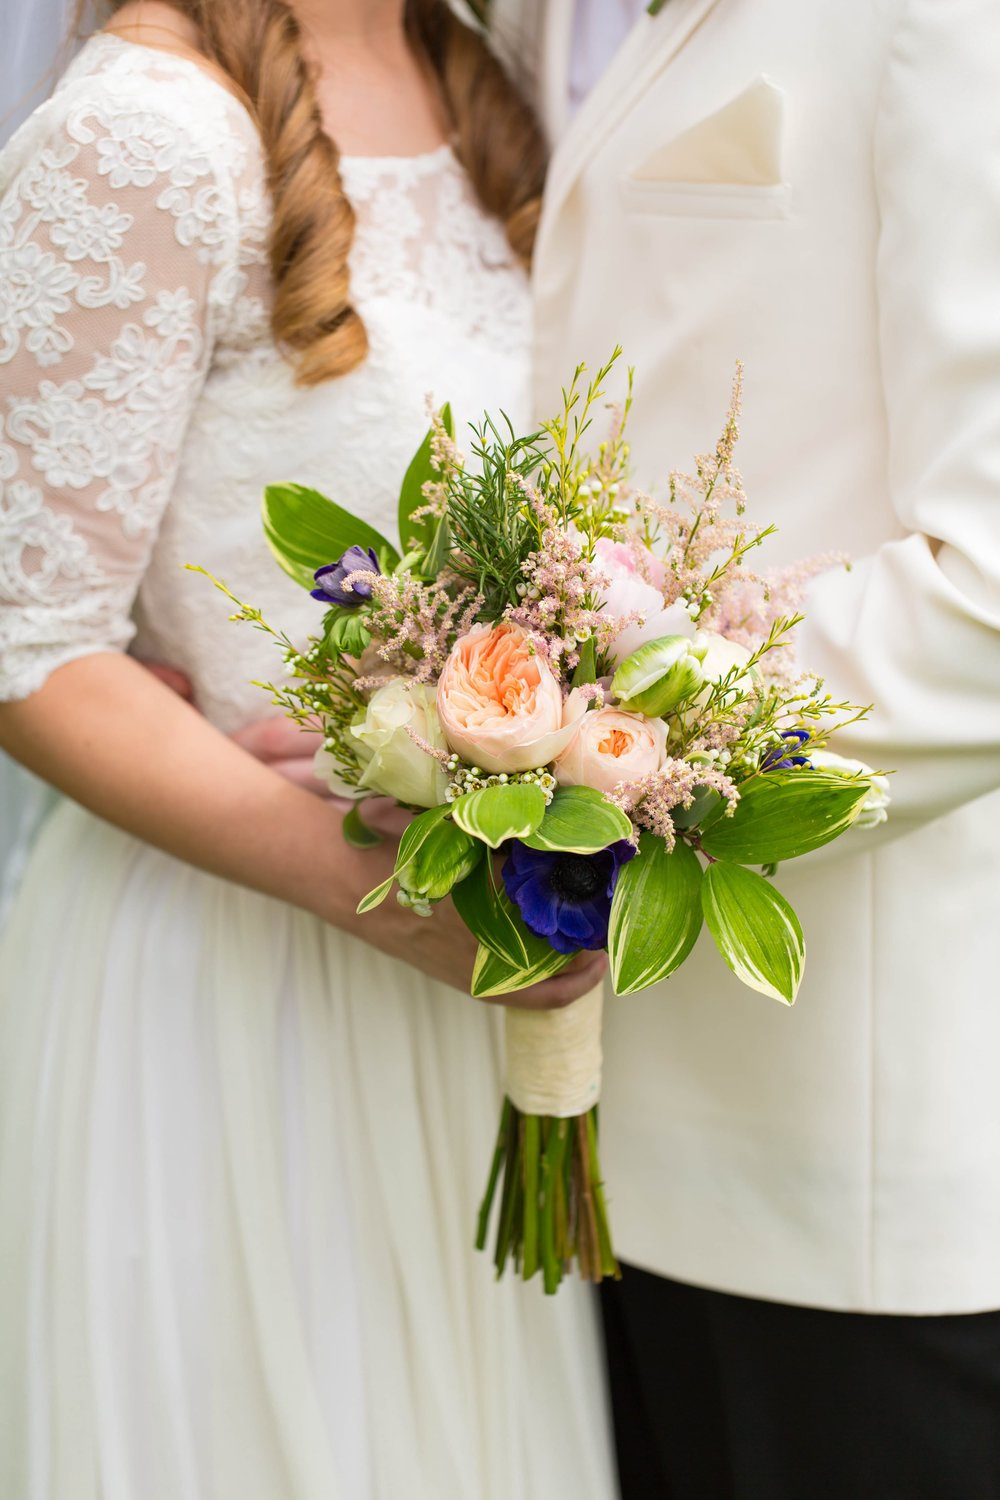 This peach garden rose bouquet by Atlanta florist Michelle Goodman was the perfect arrangement for Jenna's  classic Southern wedding at Oakton House and Gardens .